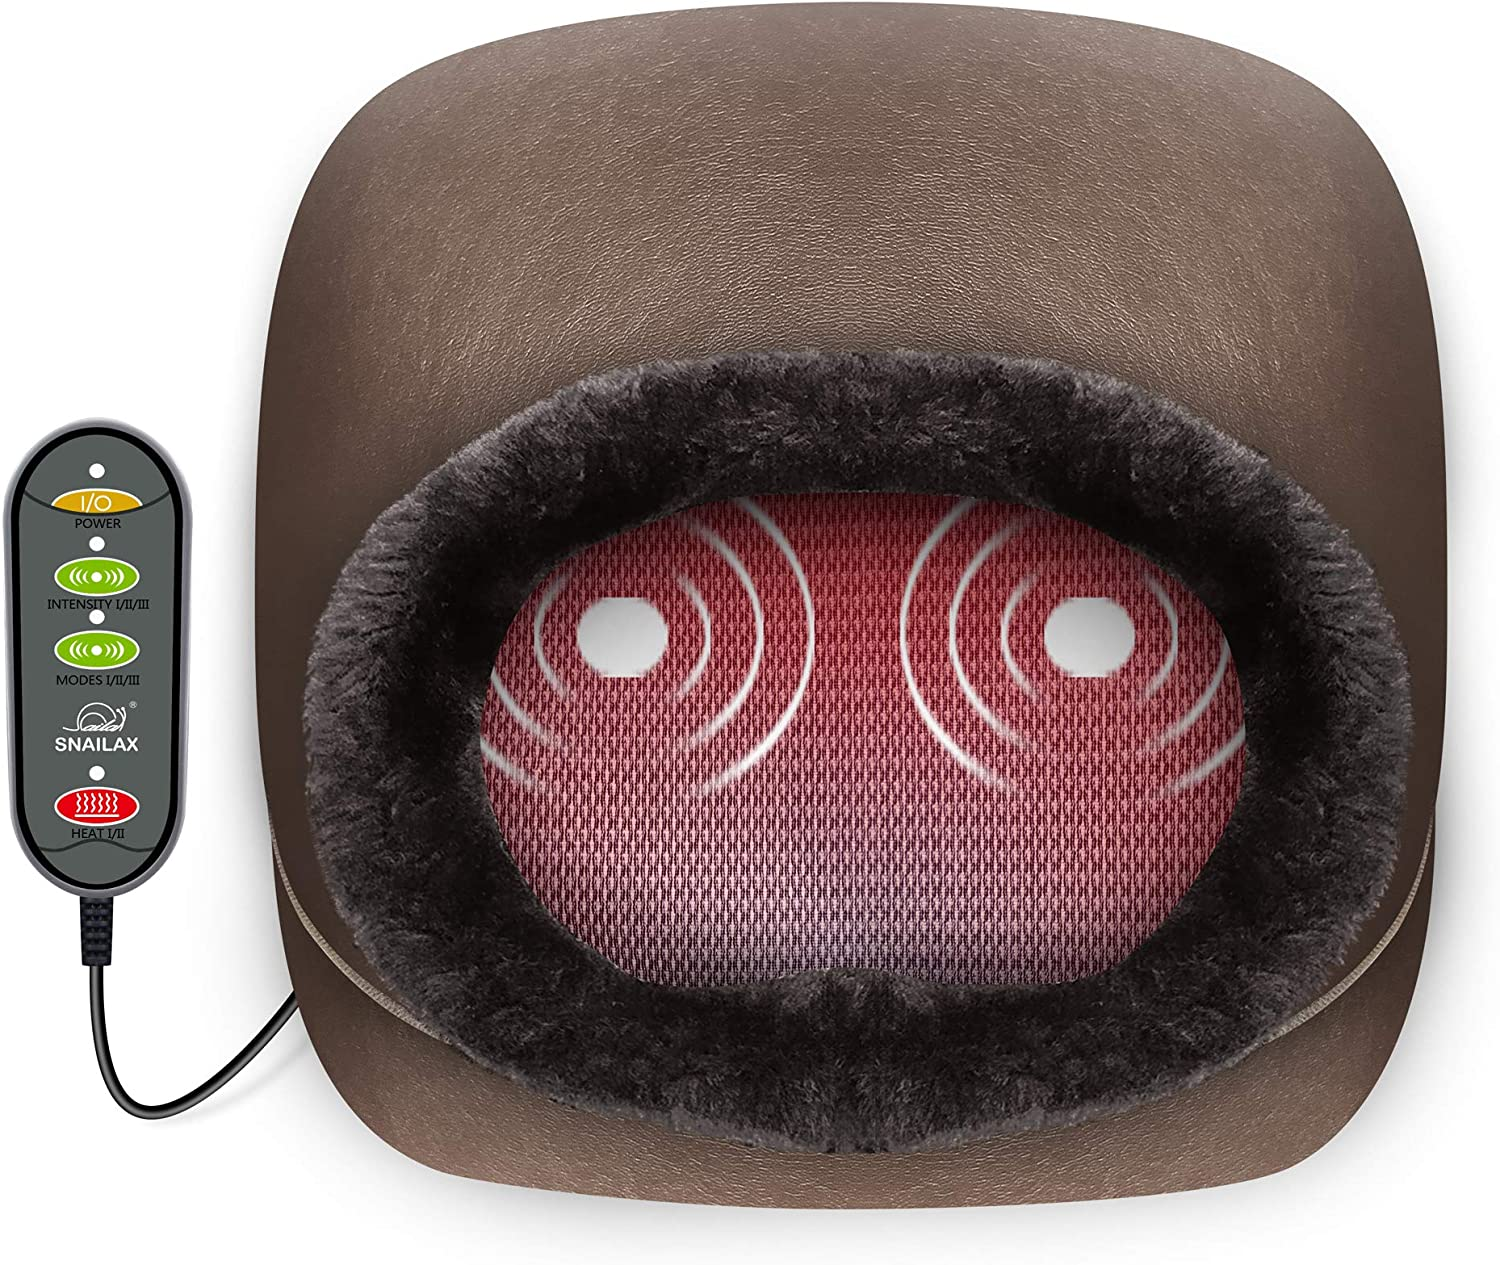 Snailax 3-in-1 Foot Warmer & Back Massager and Foot Massager with Heat, Vibration Massage with 2 Settings of Heating Pads, Feet Massage Machine for Foot,Leg,Back Pain Relief